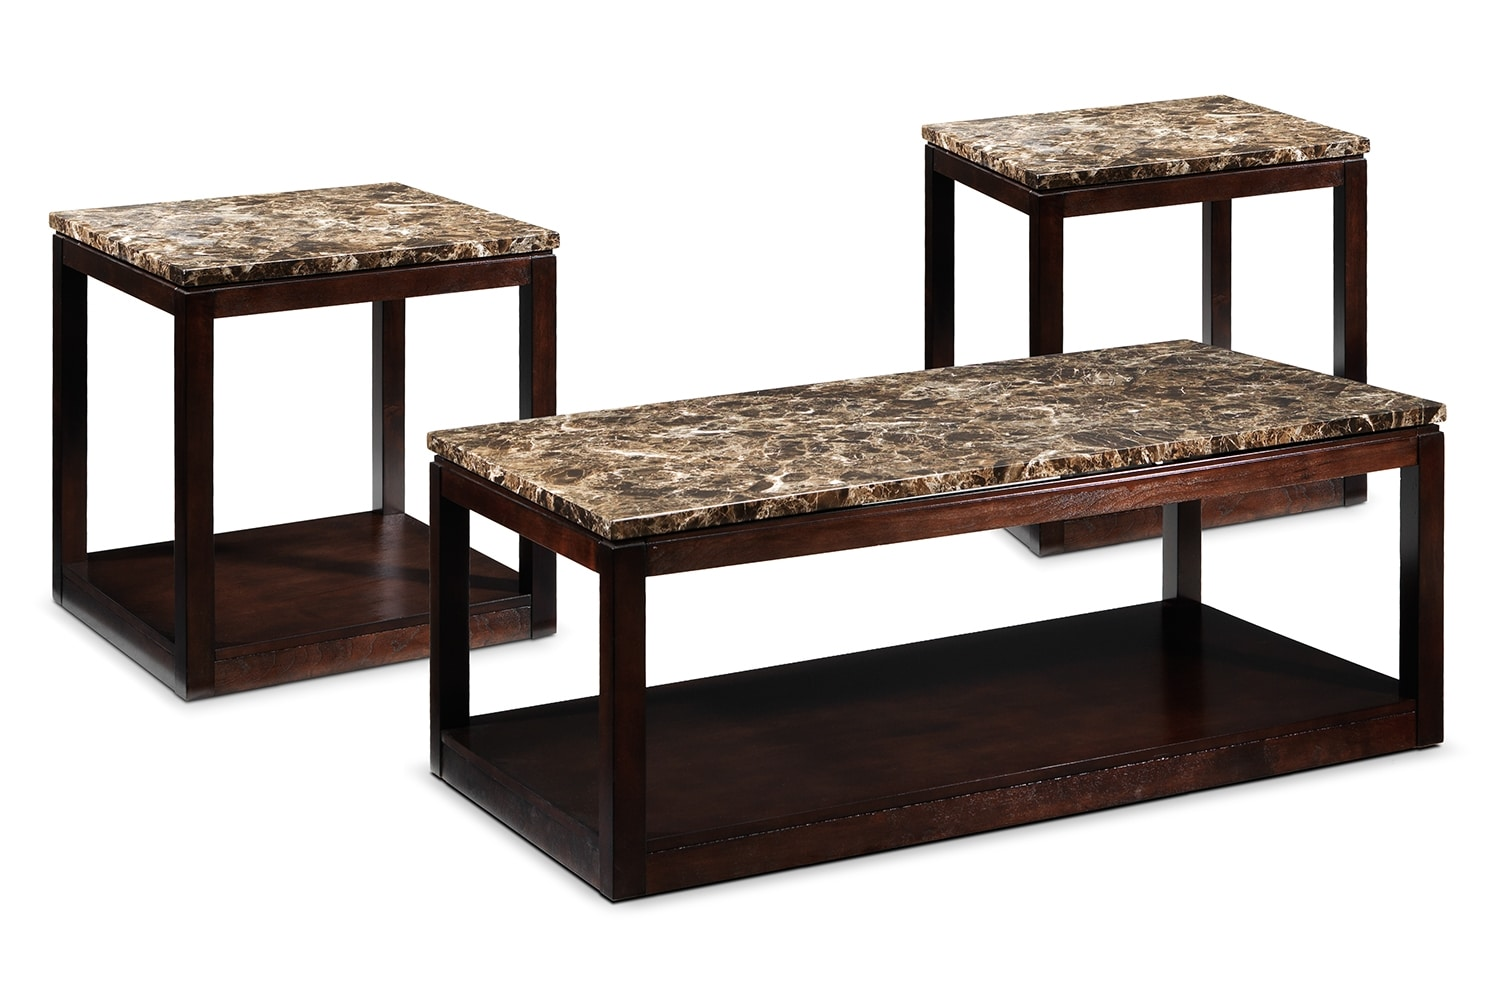 Accent and Occasional Furniture - Spark Lift-Top Coffee Table & Two End Tables Set